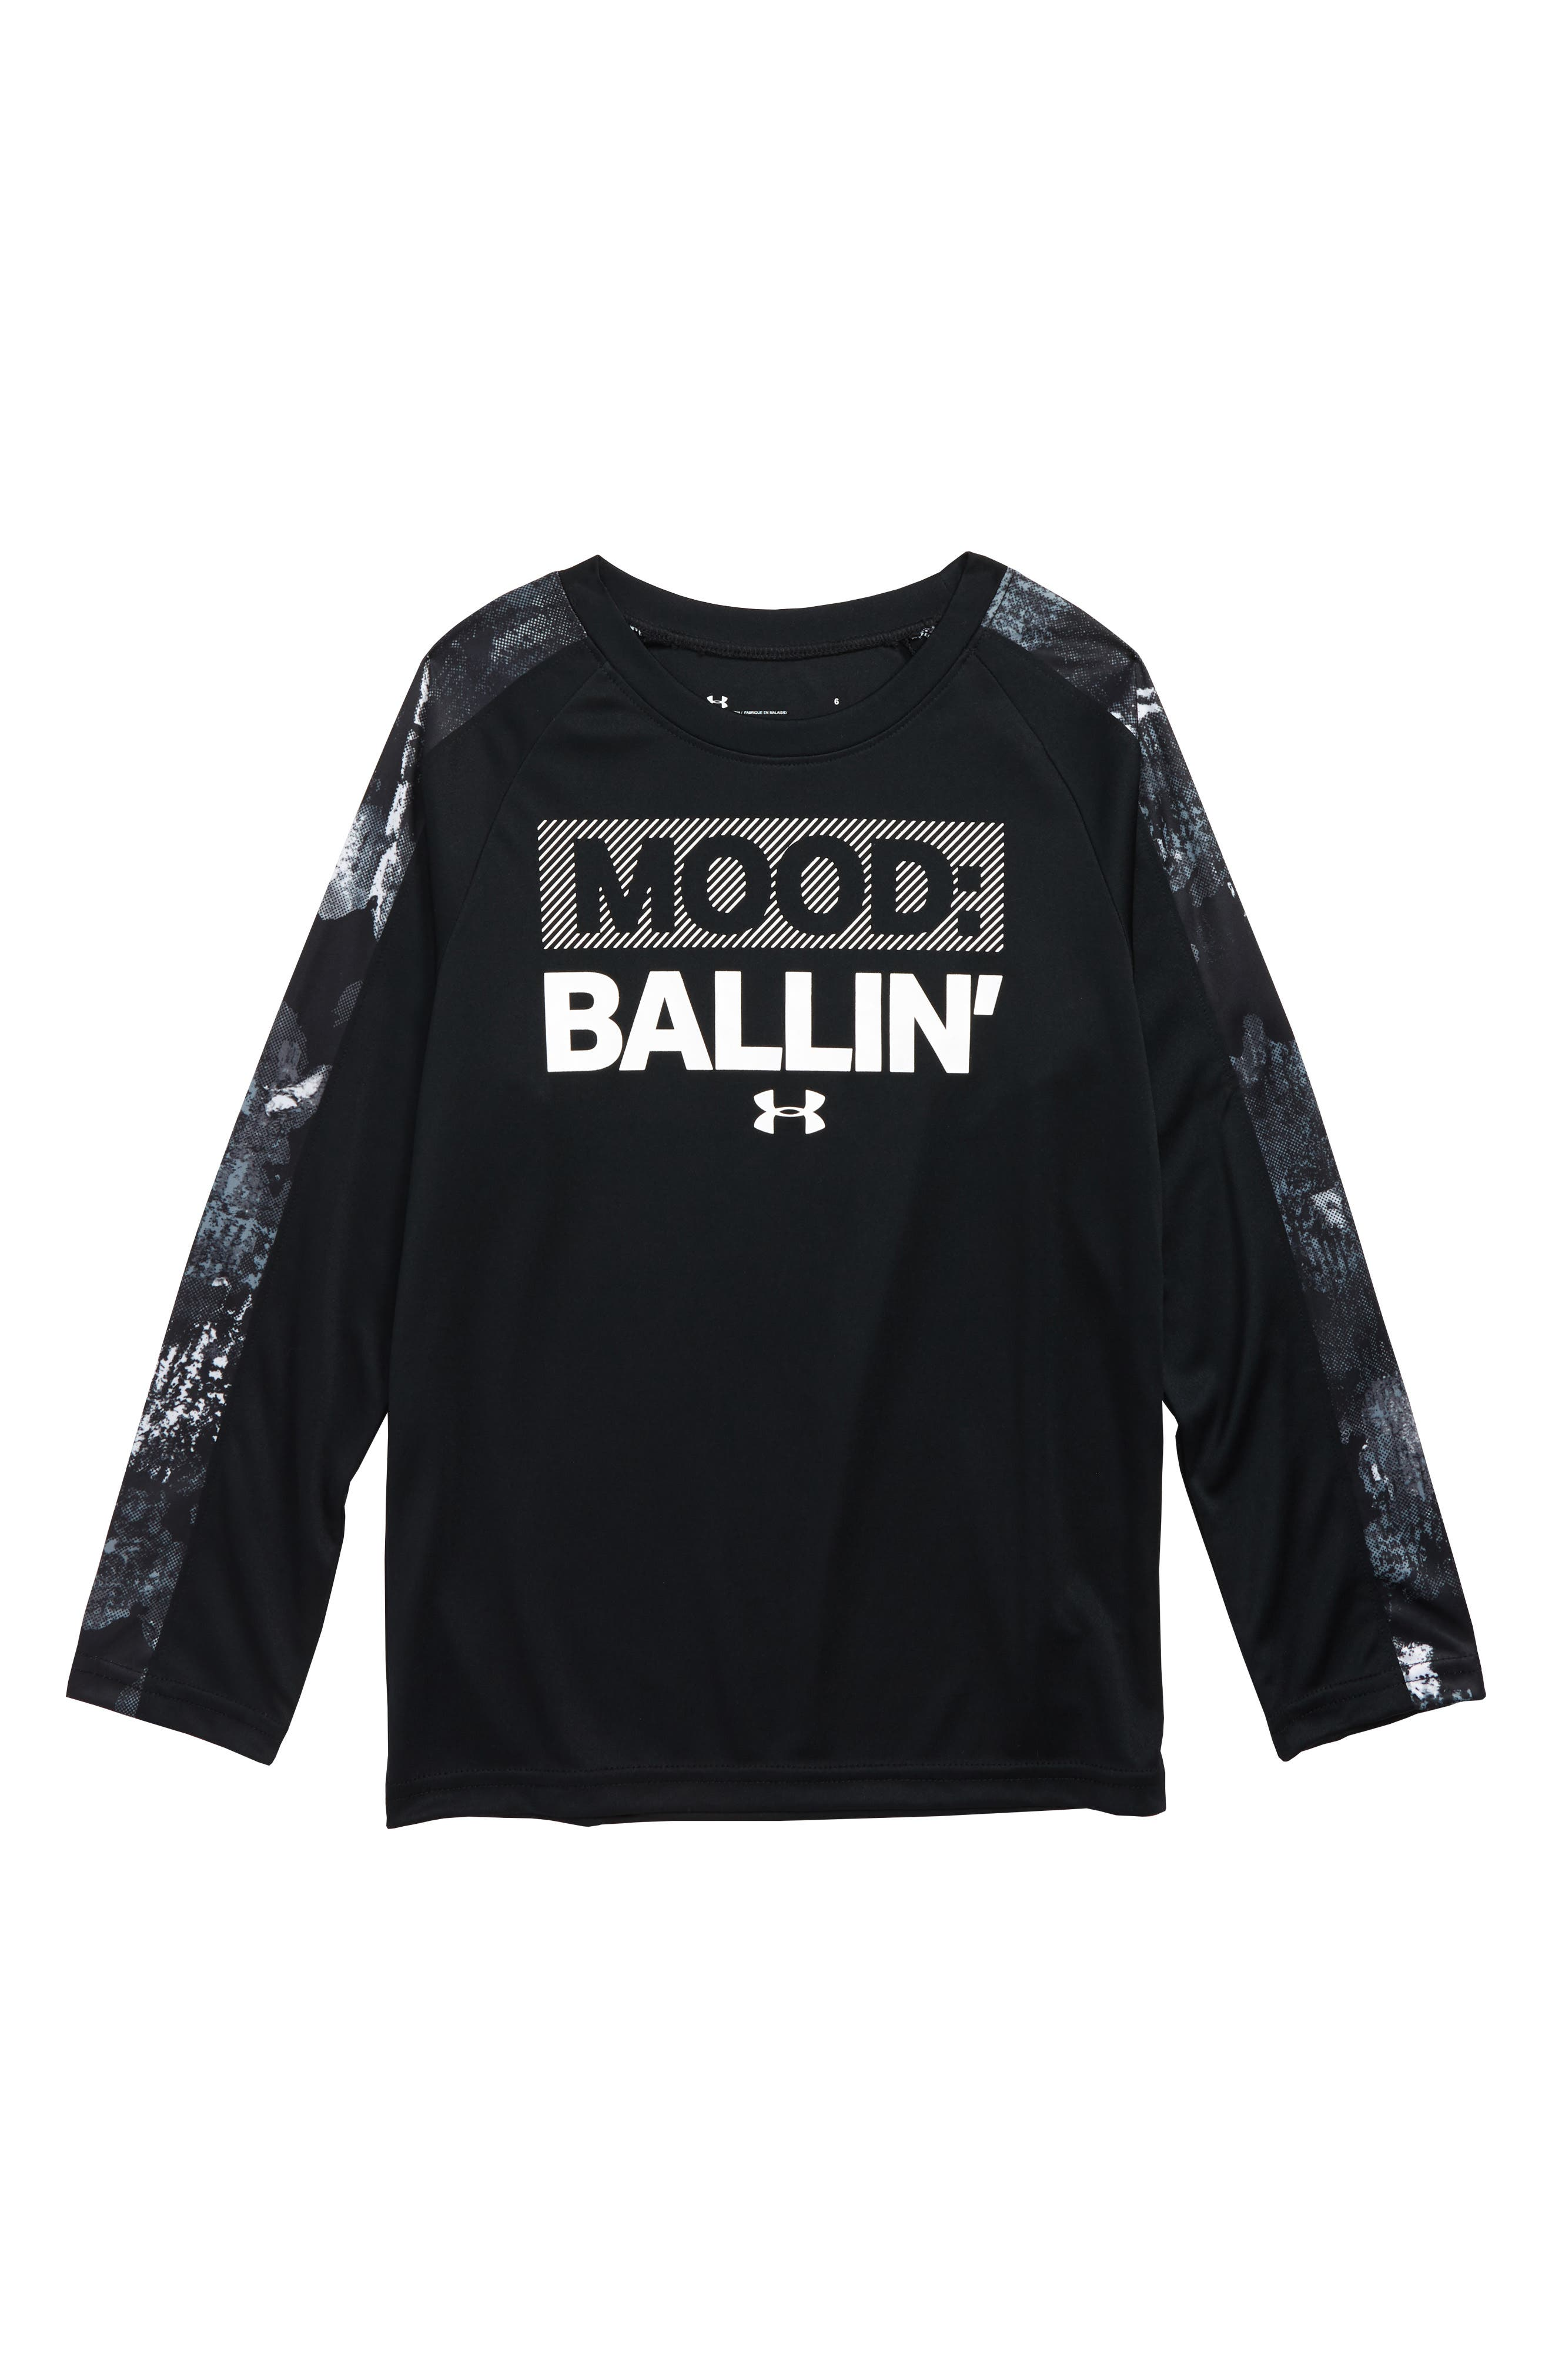 Mood Ballin' Graphic T-Shirt,                             Main thumbnail 1, color,                             BLACK